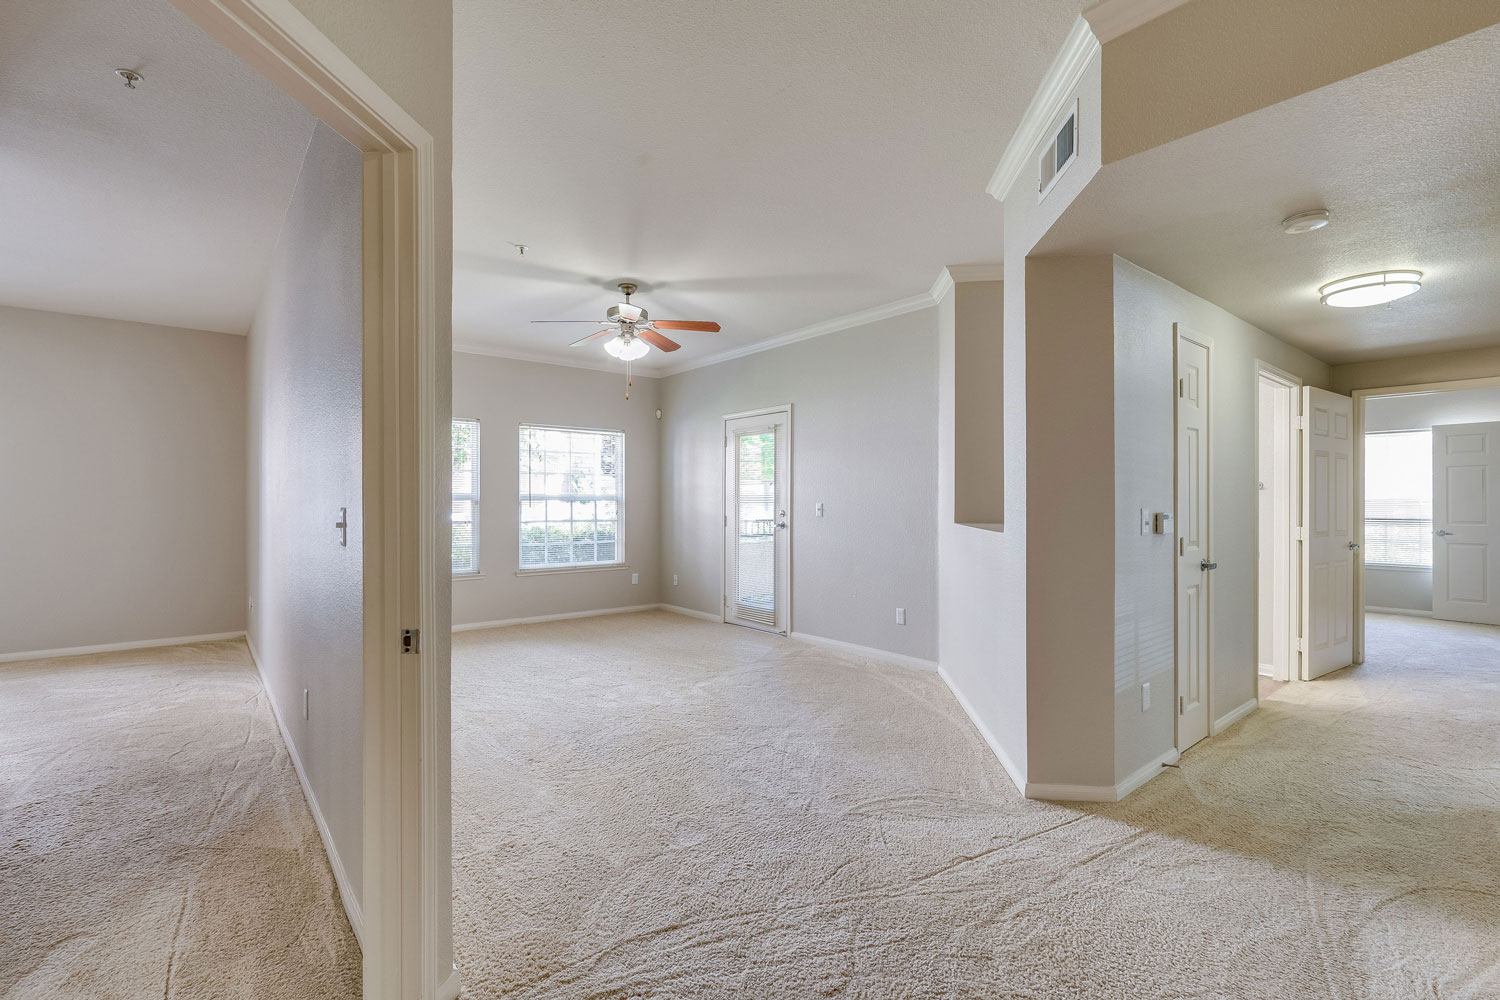 Unfurnished living room with carpet flooring, a ceiling fan, patio door, and adjacent hallway and bedroom.